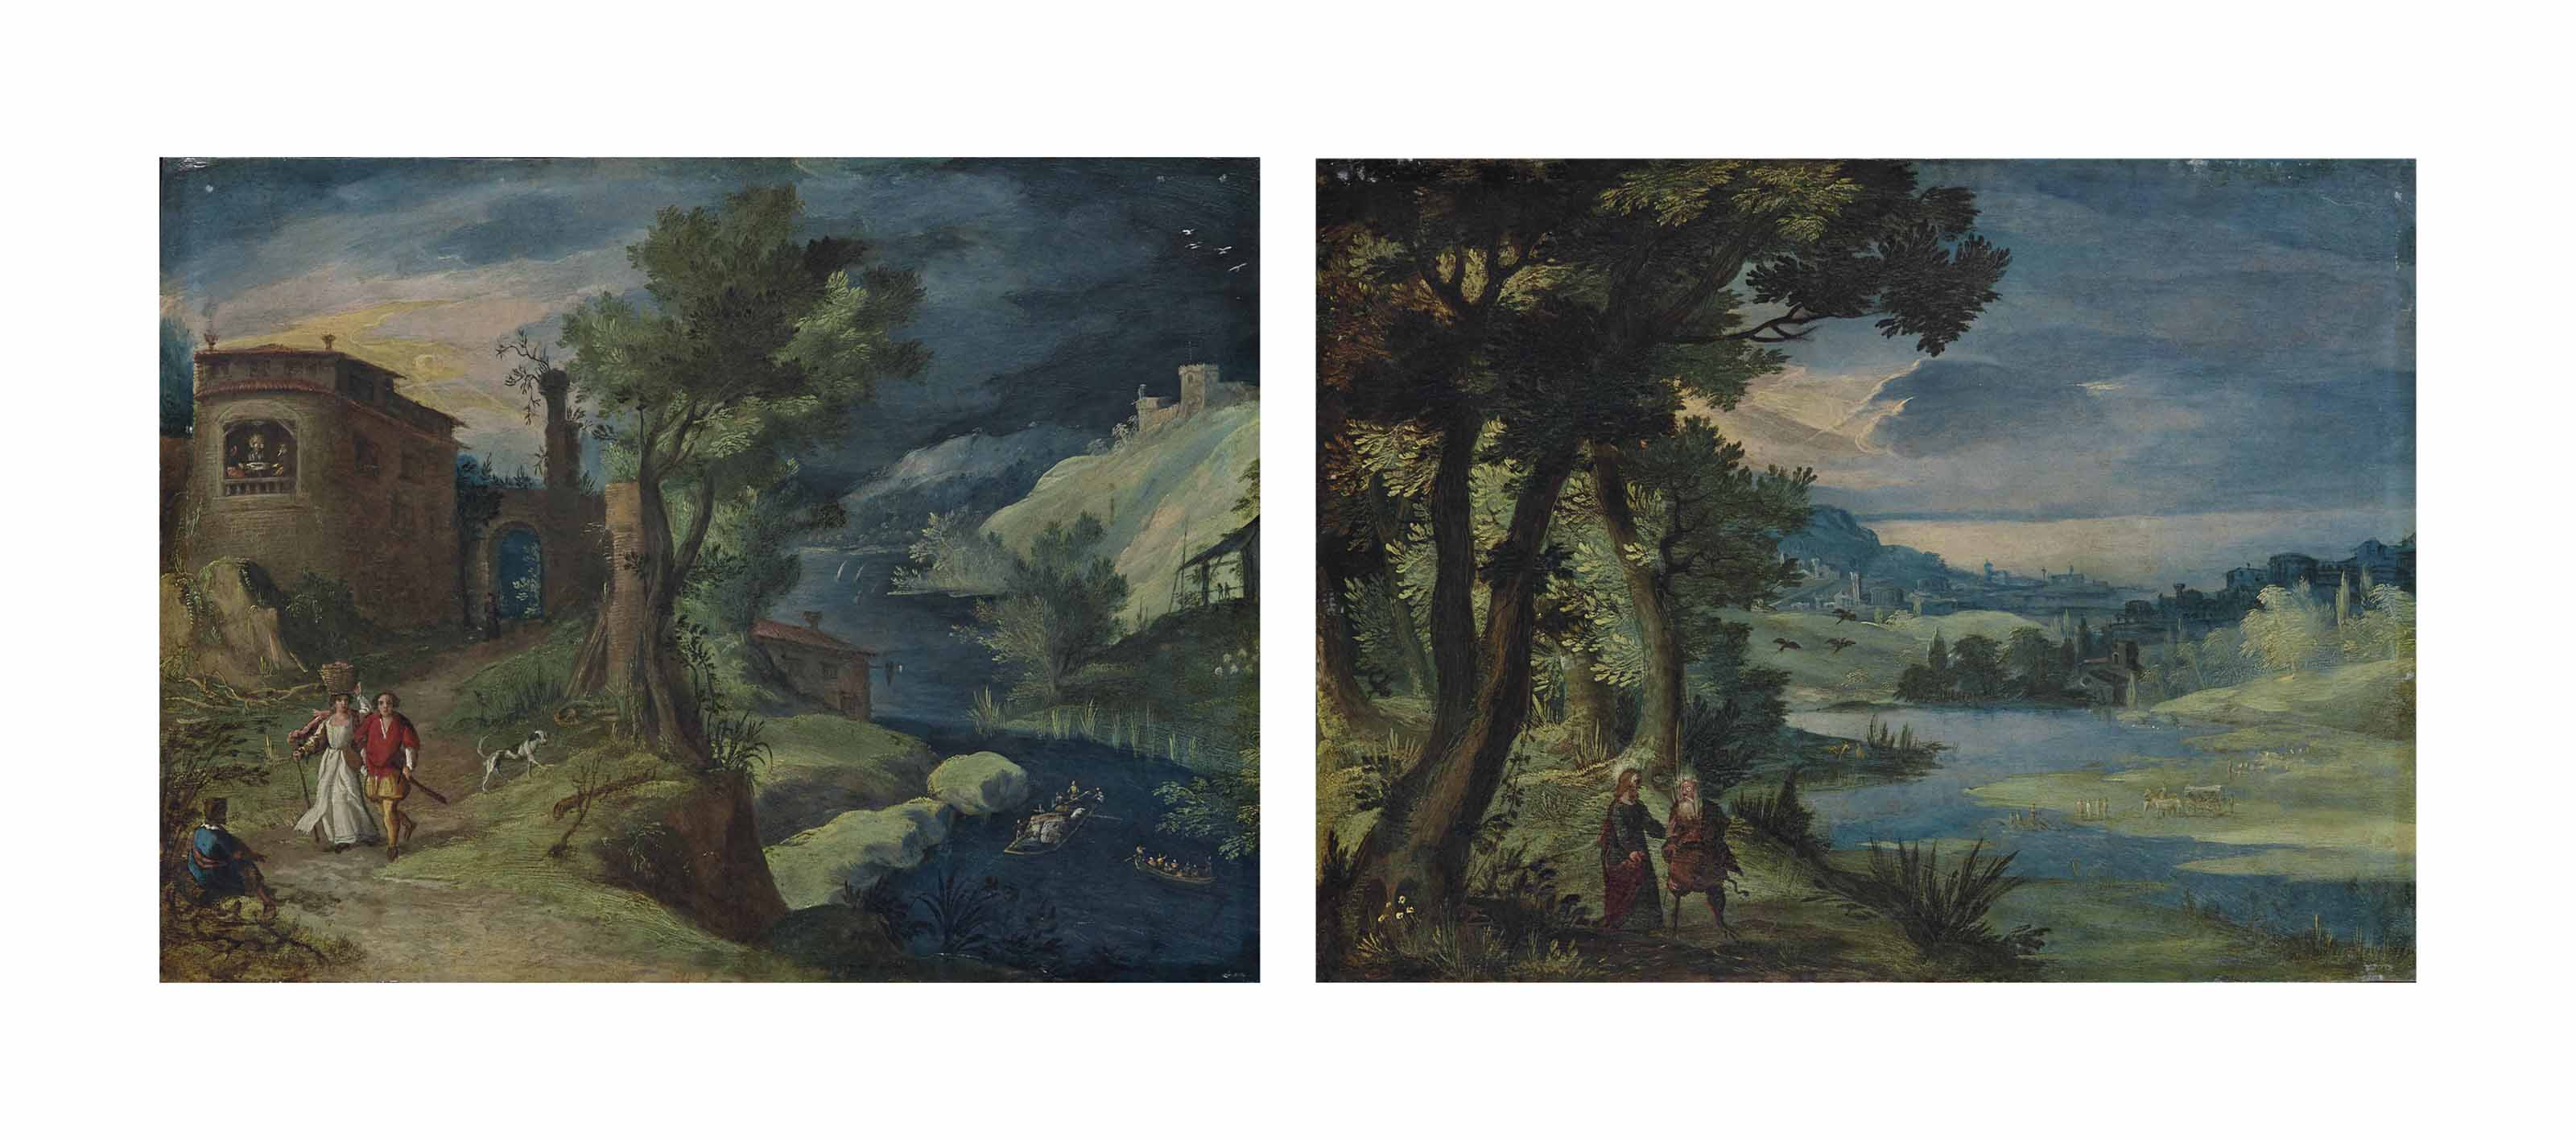 A river landscape with the Supper at Emmaus; and A river landscape with the Temptation of Christ